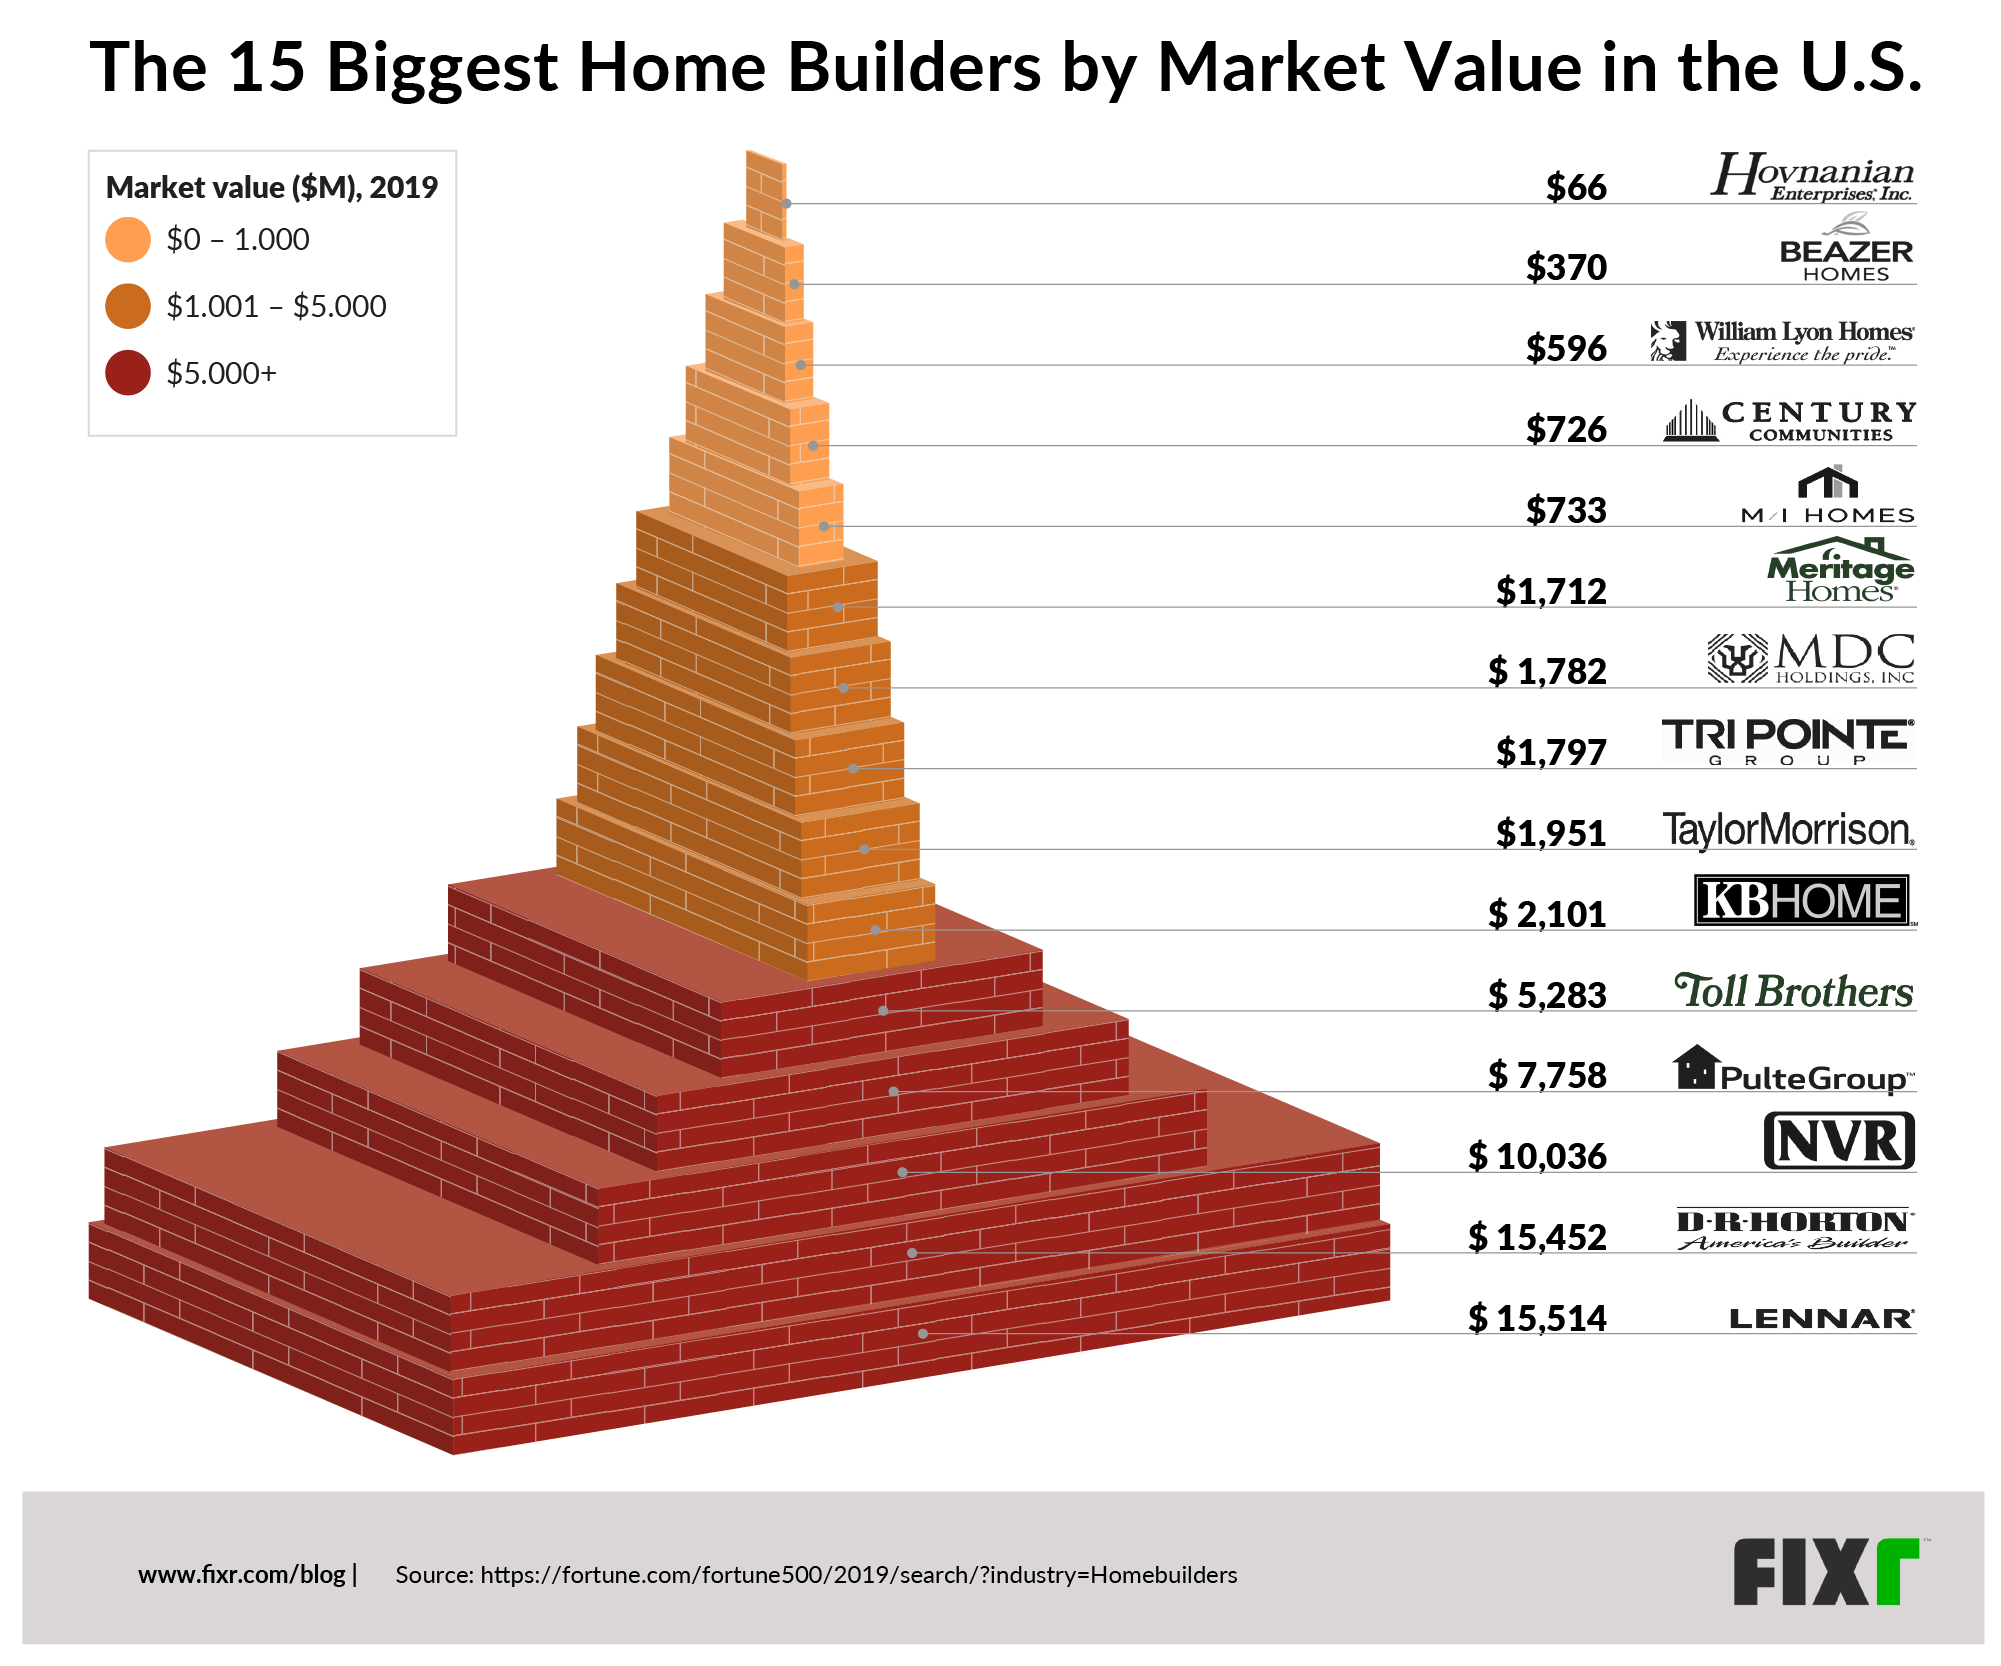 The fifteen biggest home builders by market value in the U.S.